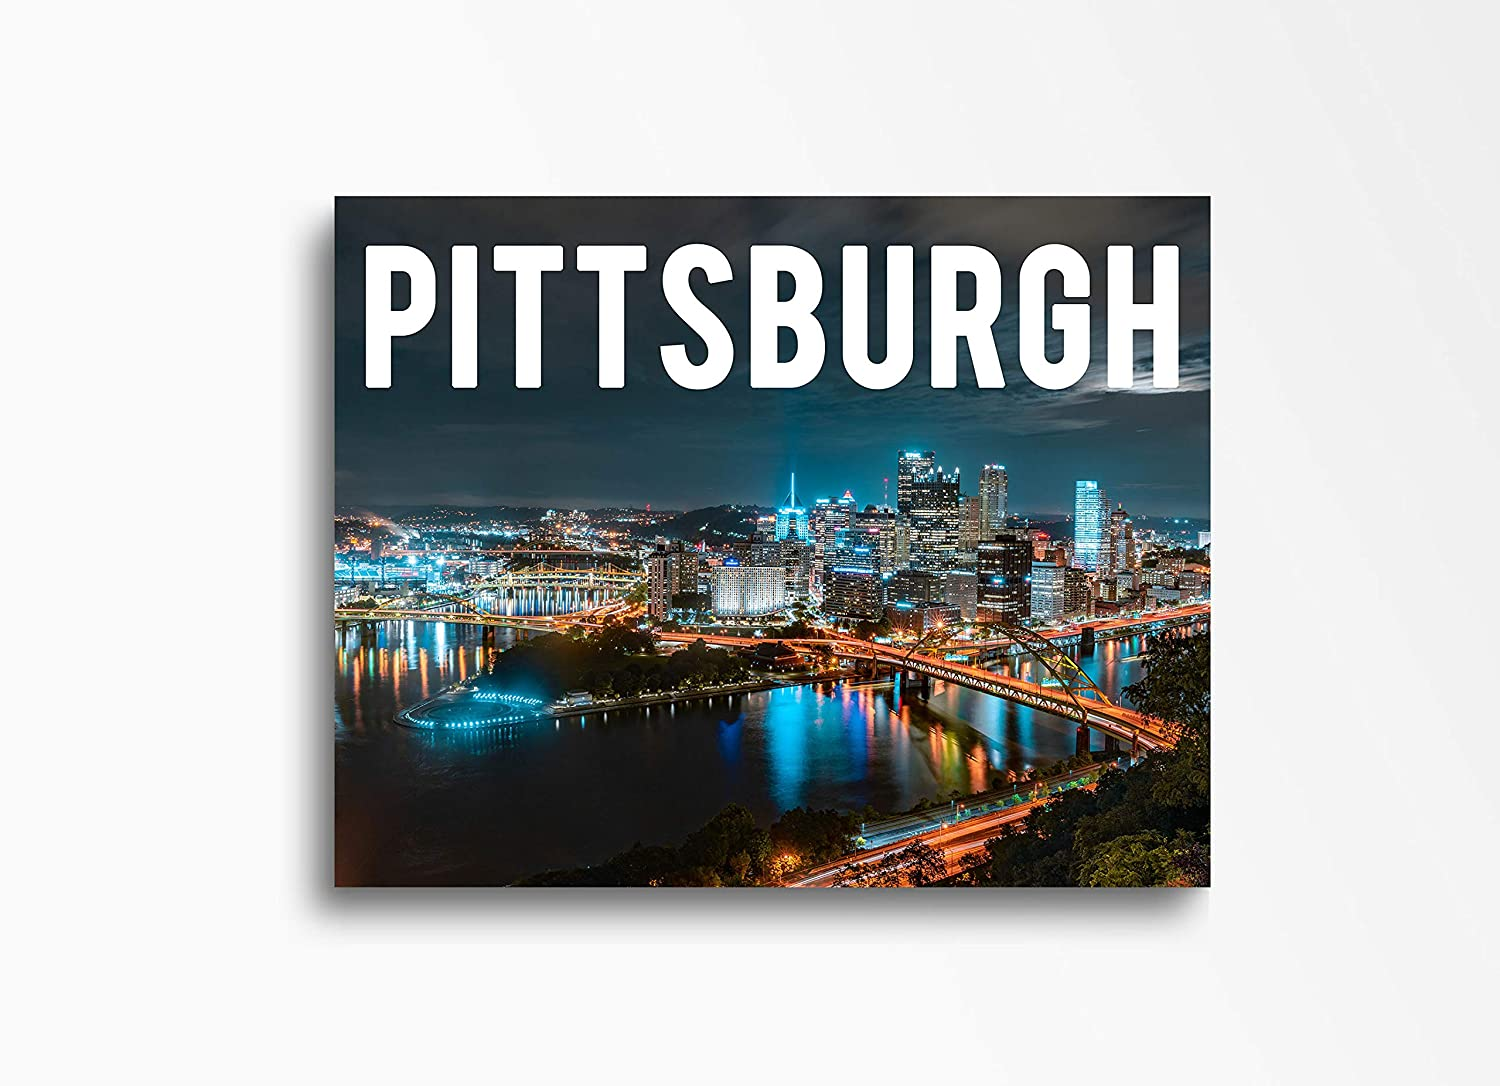 Pittsburgh | 16x20in| Downtown Skyline Canvas Wall Art Home Decor, Great for Kitchen, Living Room, Bedroom & Home Office. Unique Cityscape Canvas Wall Decor Ready to Hang